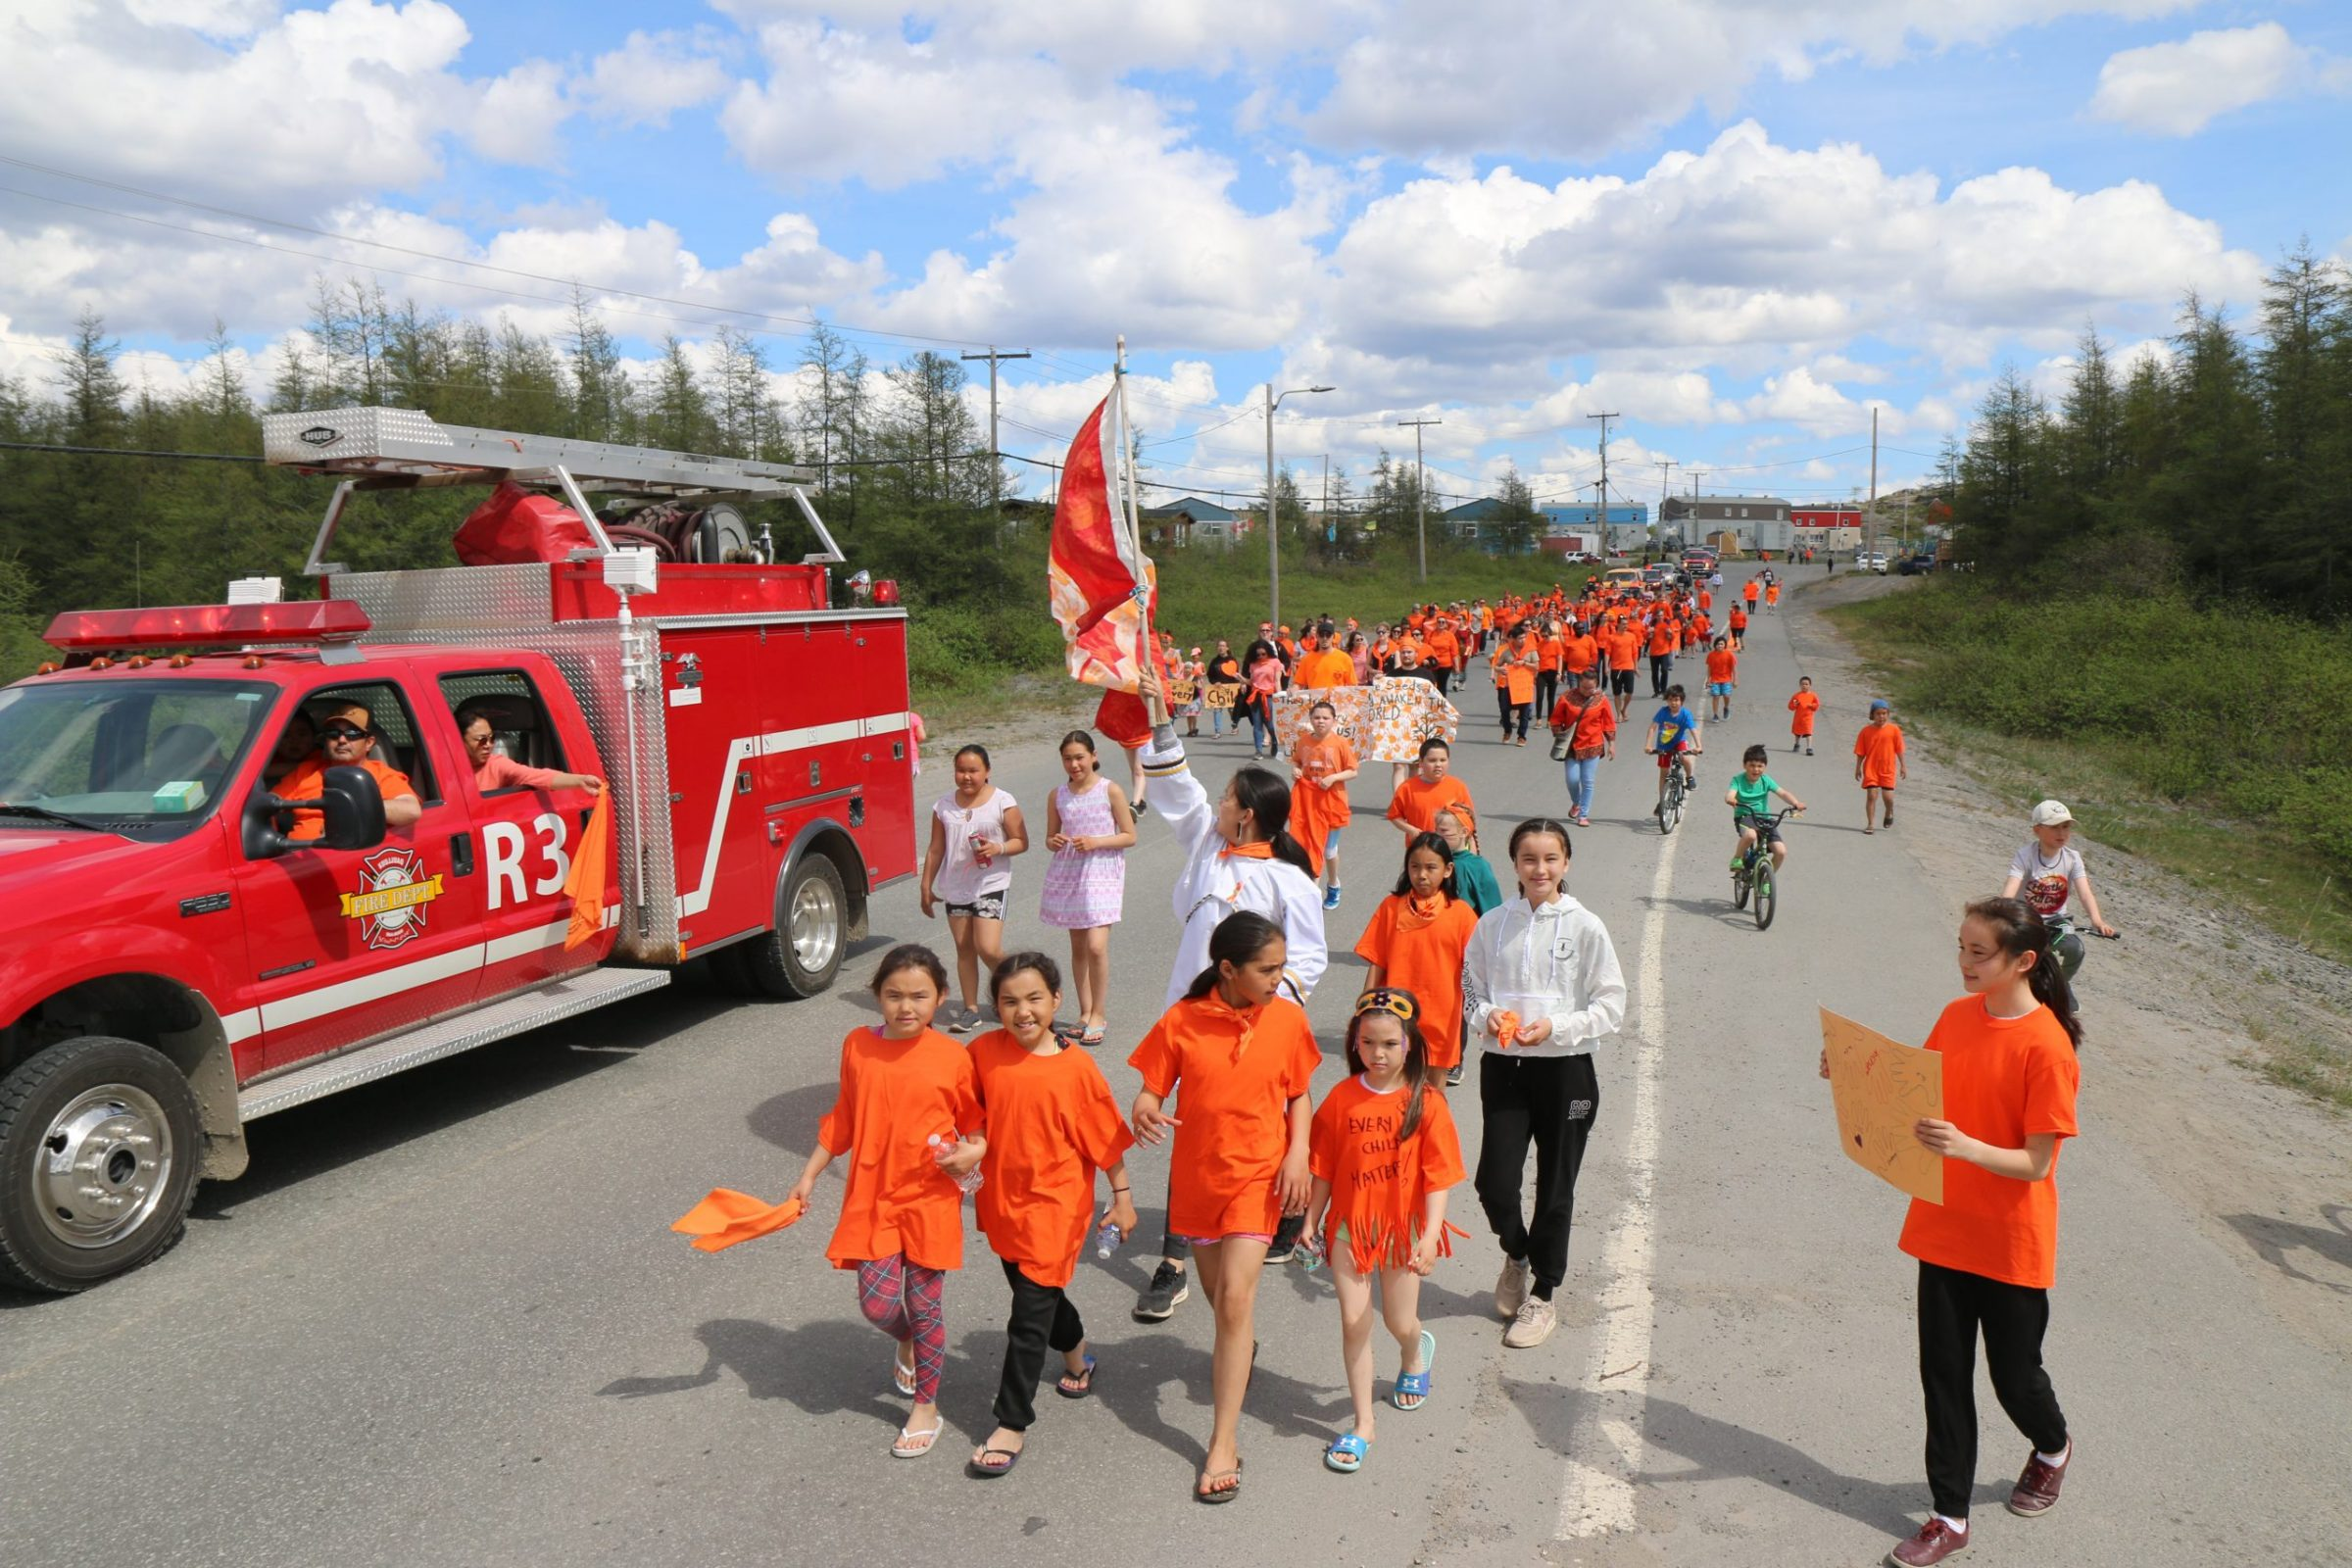 """More than 100 Kuujjuaq residents attended a parade on National Indigenous Peoples Day on Monday to honour children lost to Canada's residential school system, following the recent discovery of the remains of 215 children at a former residential school in Kamloops, B.C. Many attendees wore orange, a colour associated with the Every Child Matters campaign, which honours the experience of residential school survivors. """"I'm so happy to see so much orange to show support of this initiative,"""" said organizer Lavinia Flaherty. (Photo by Malaya Qaunirq Chapman)"""